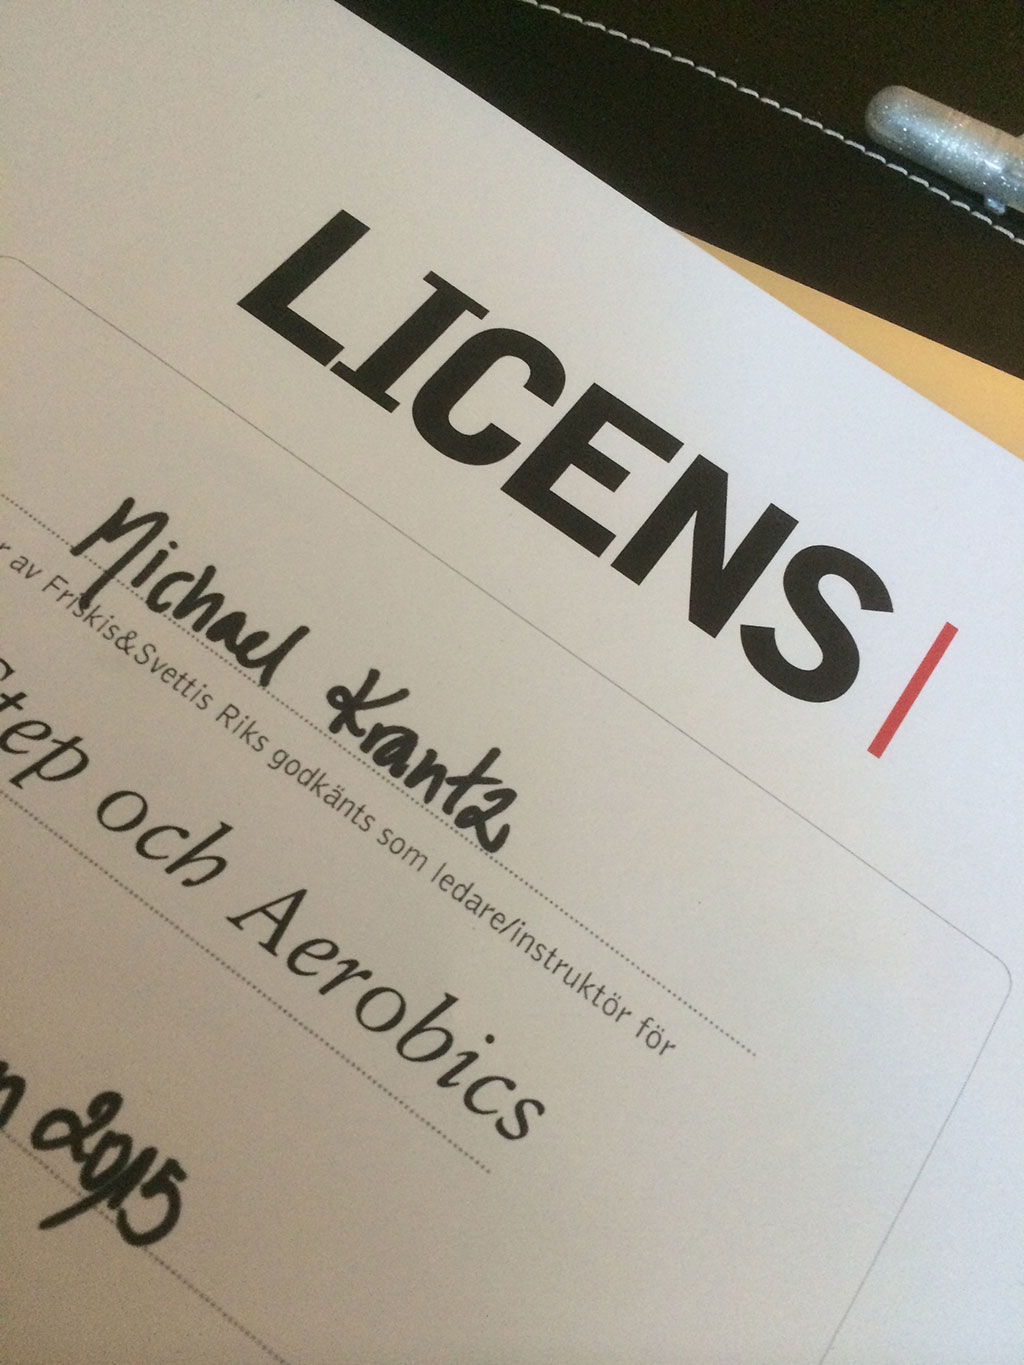 Licensierad – yeay!